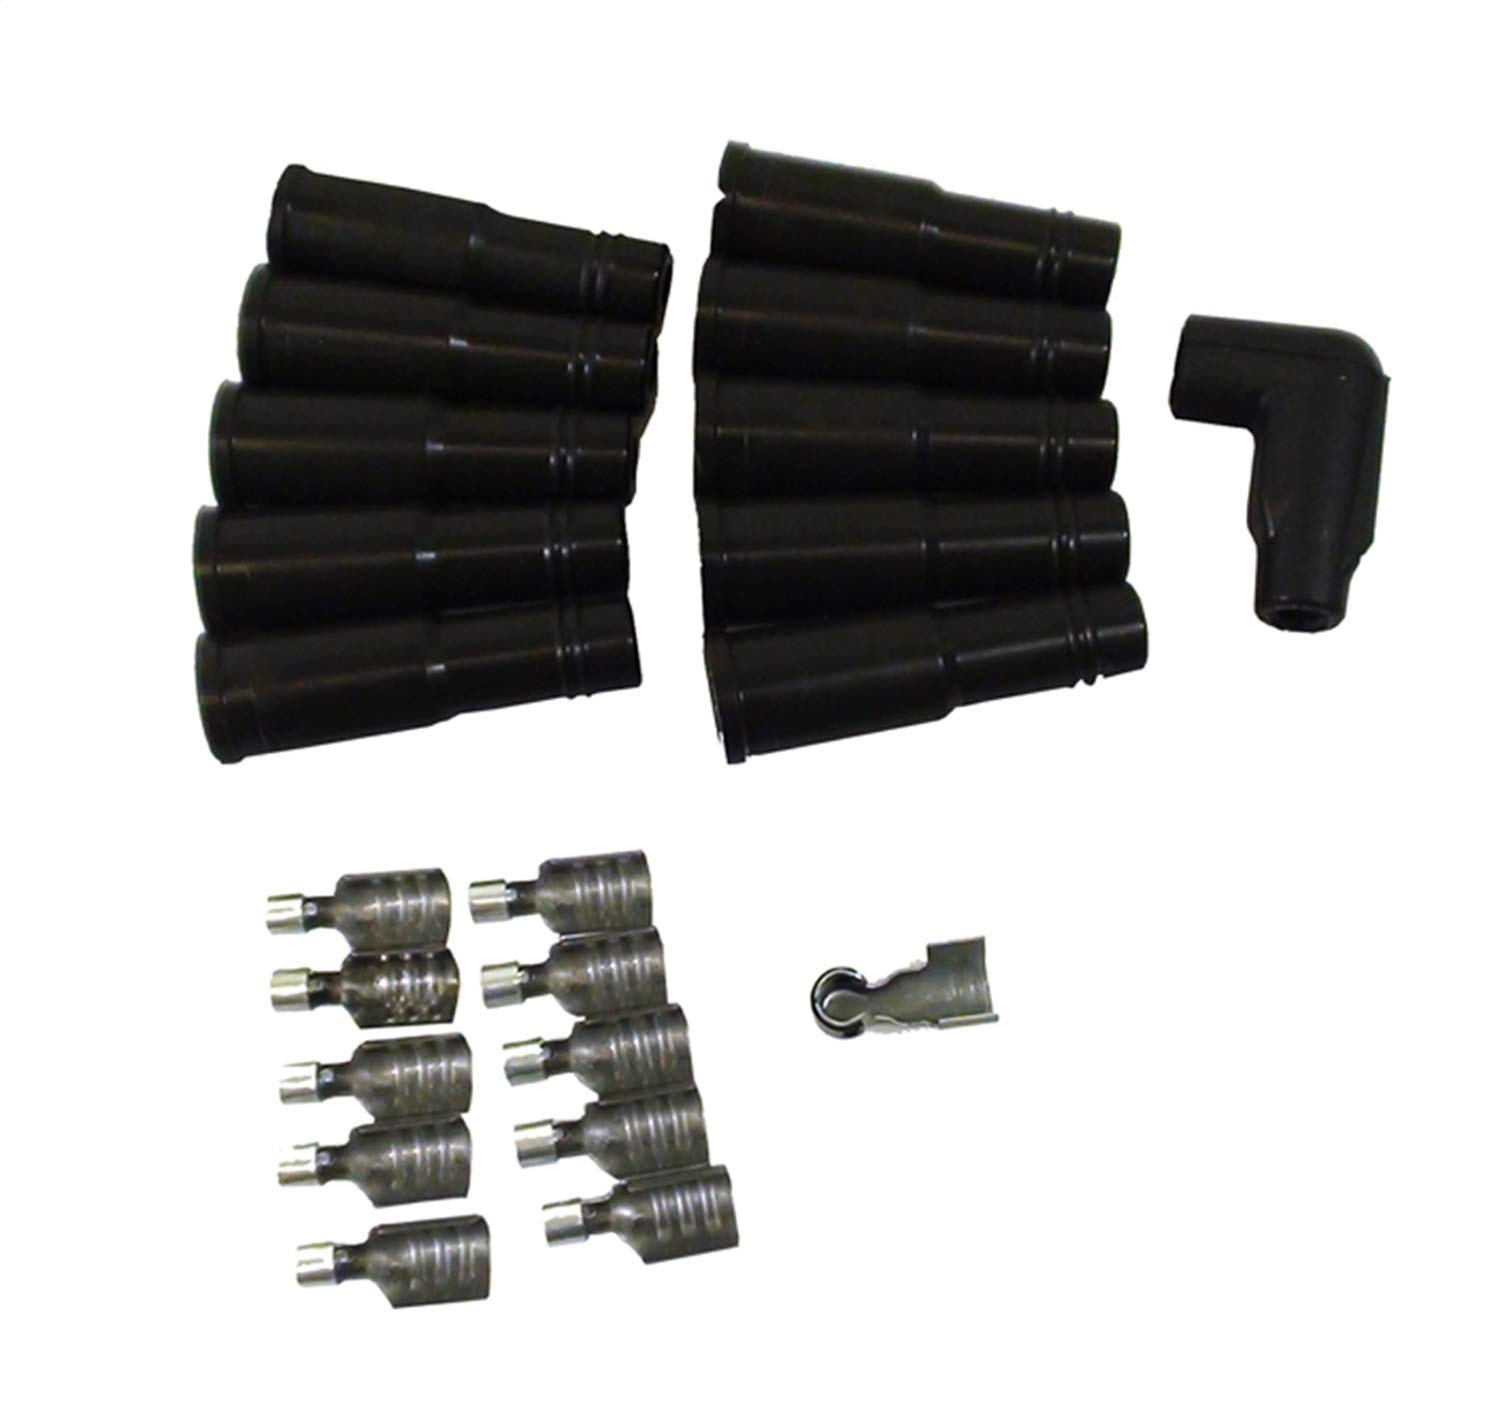 Taylor Cable 46052 LT1 180-Degree Black Spark Plug Boot with Terminals - Pack of 10